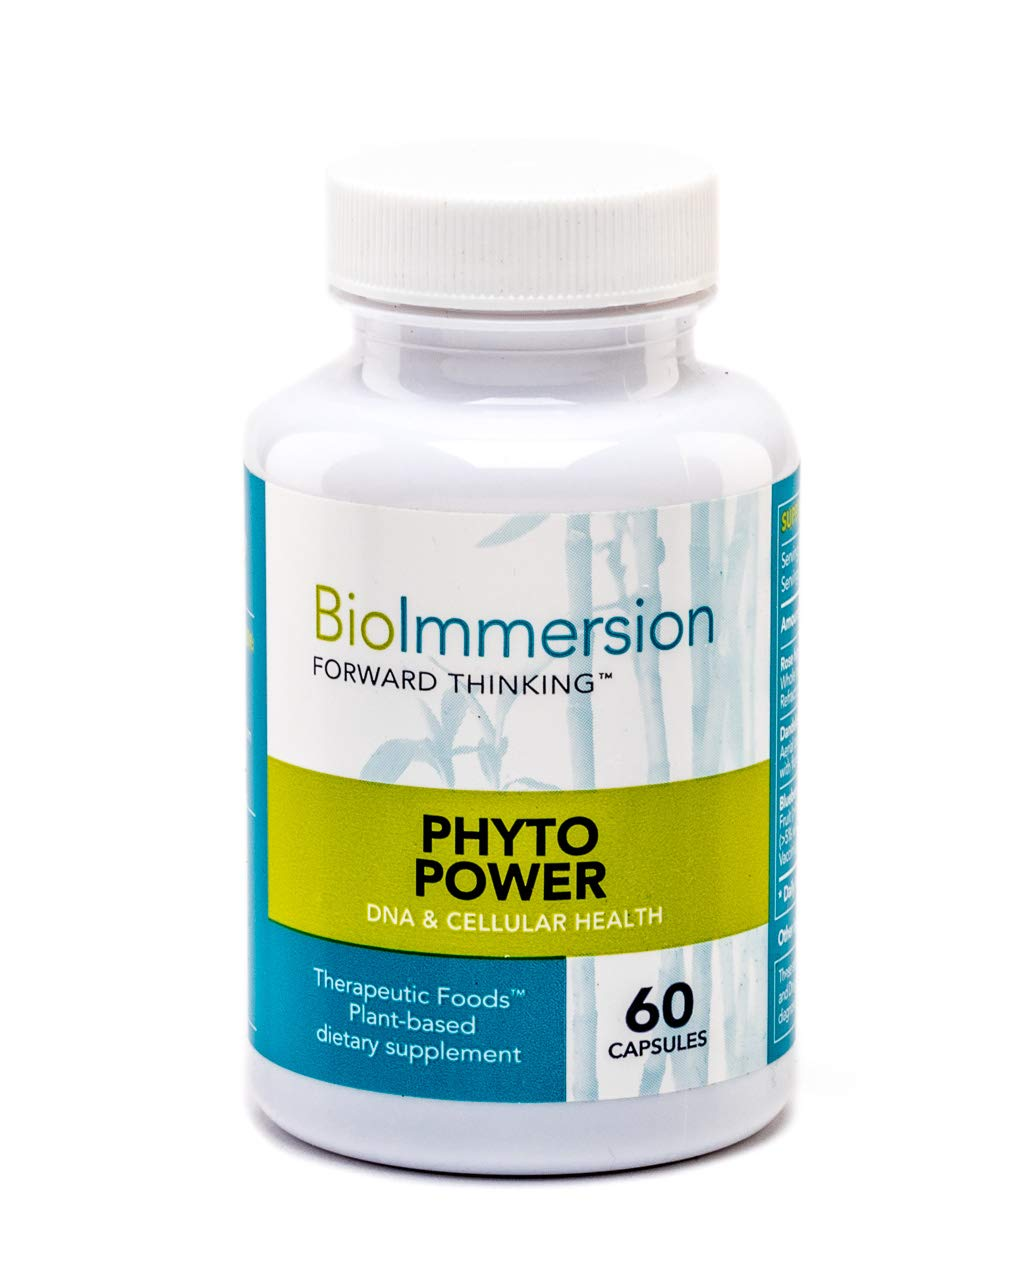 BioImmersion - Phyto Power - DNA & Cellular Integrity. Potent phytonutrients for Anti-Aging* - 60 Capsules by BioImmersion